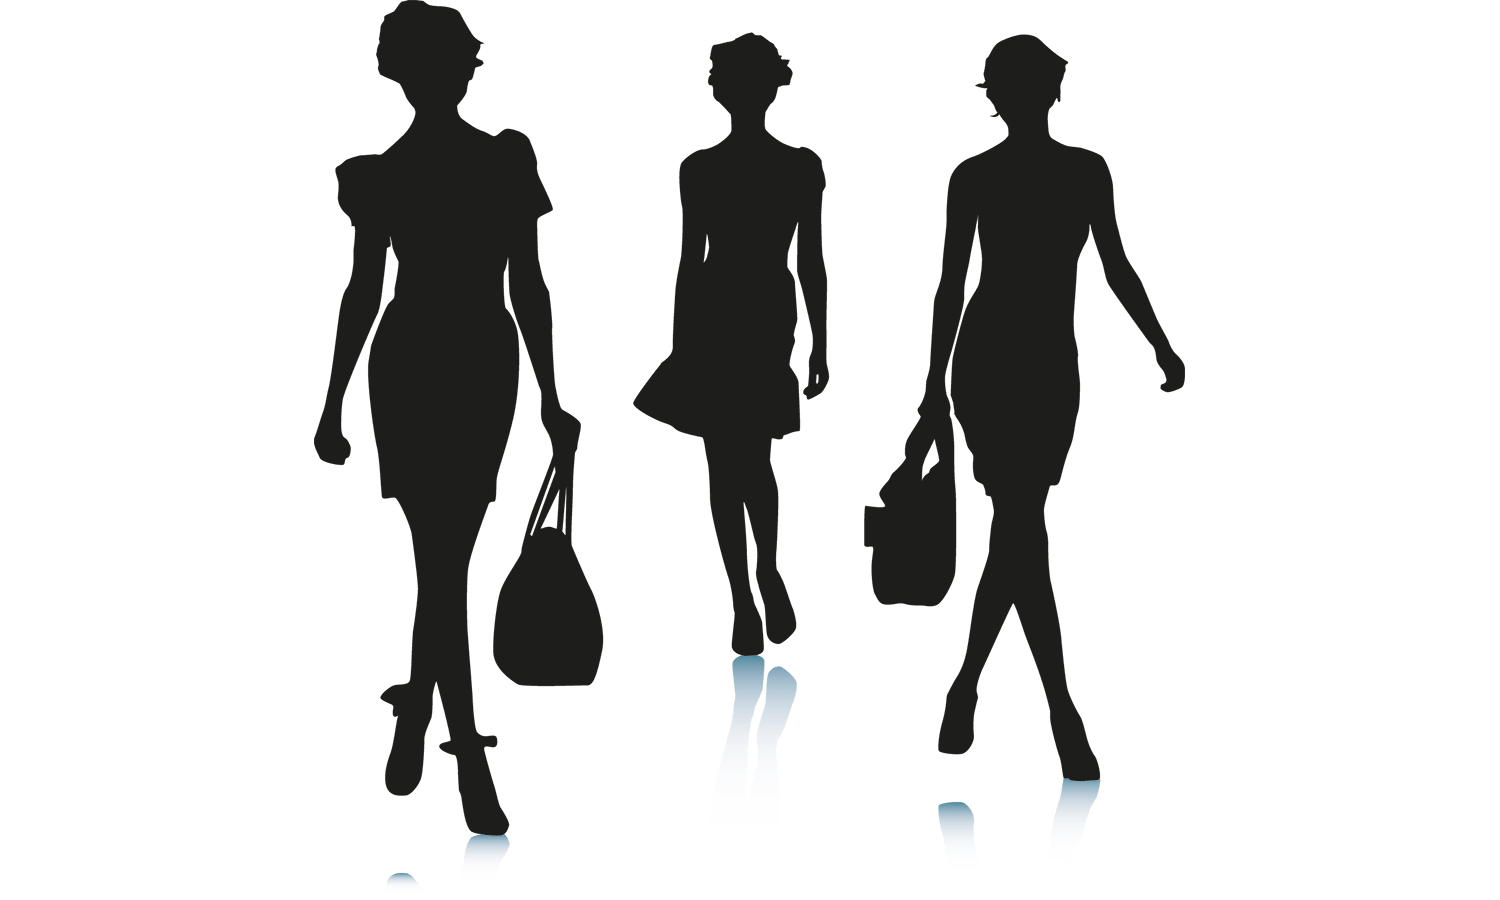 Silhouette Vector Graphics Royalty Free Stock Photography